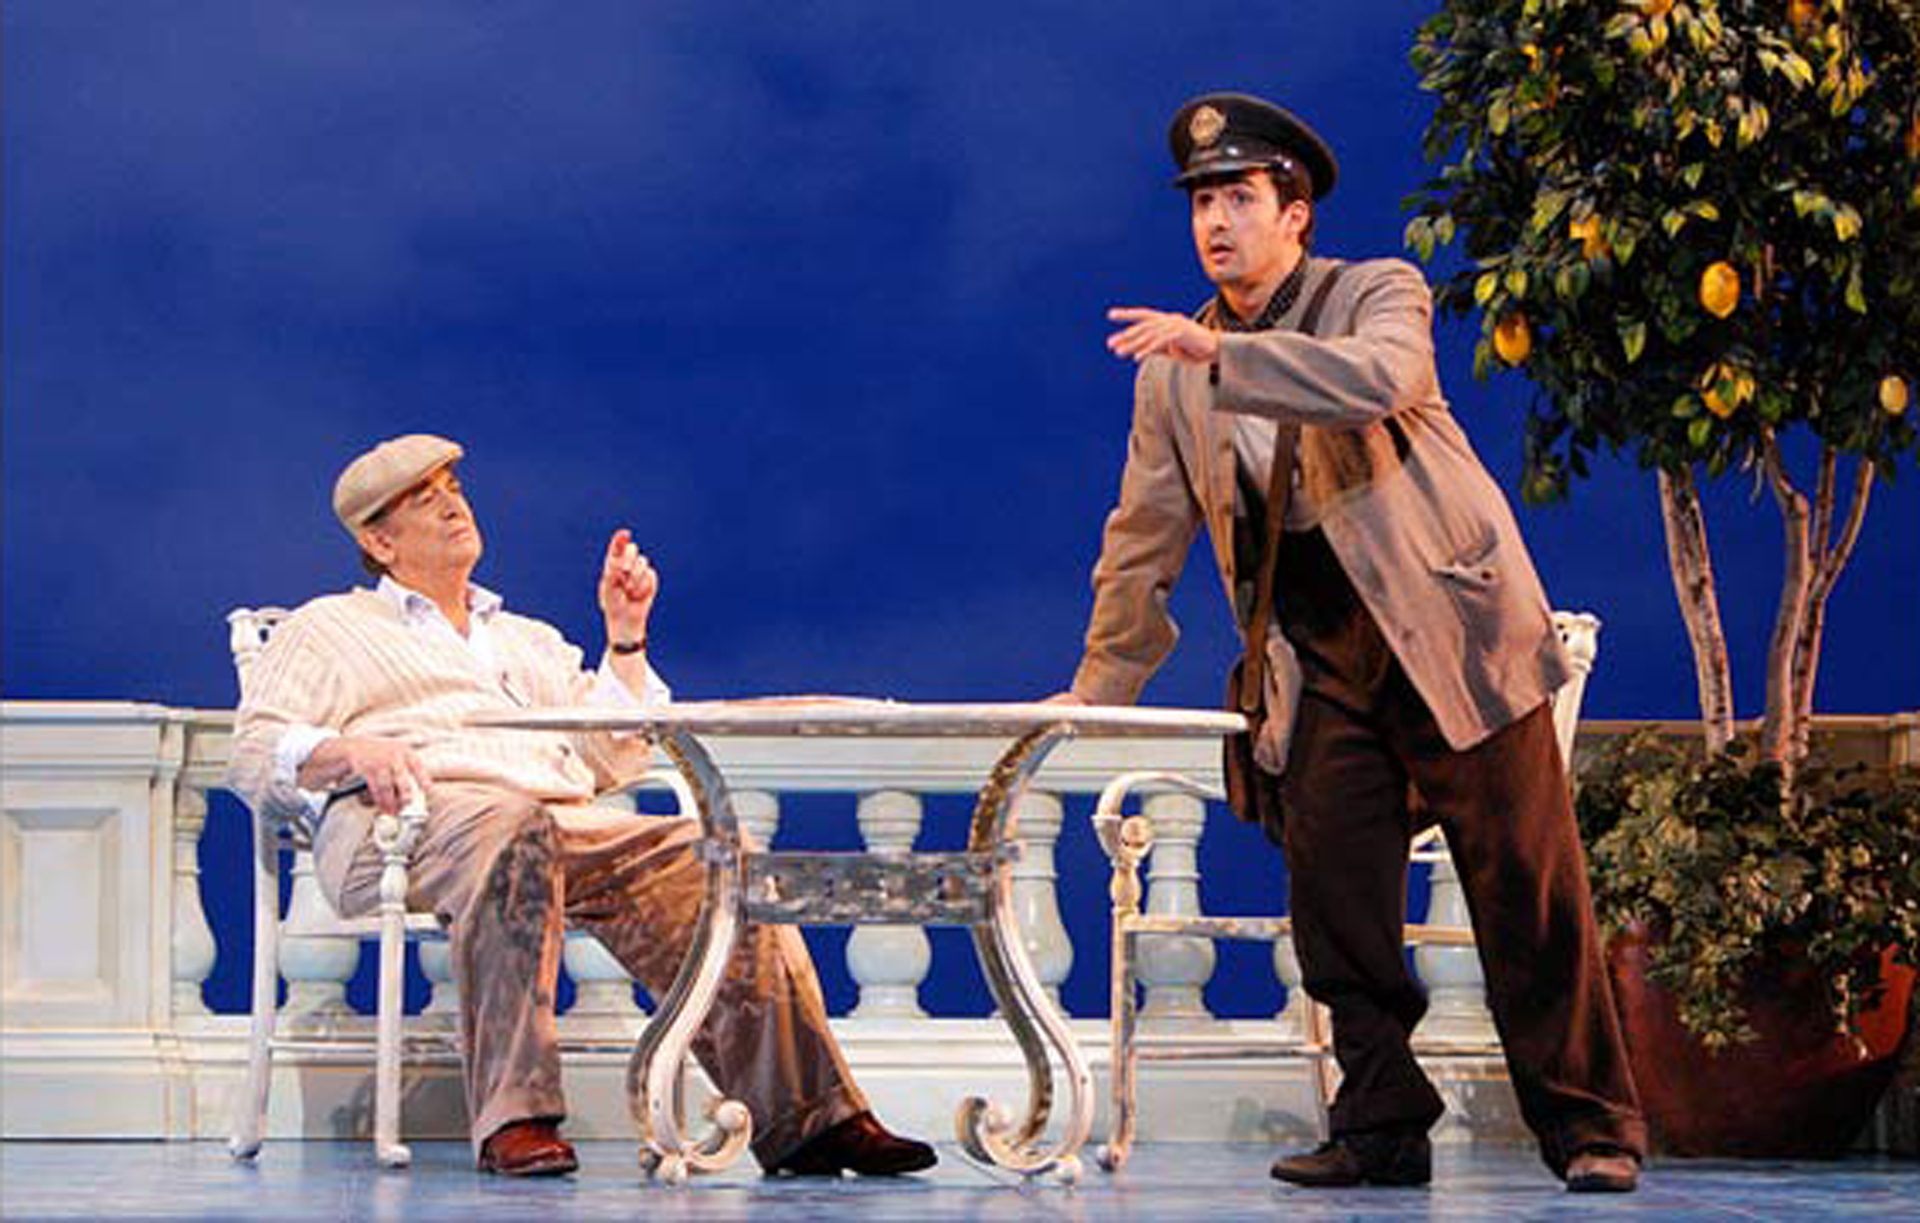 Plácido Domingo as Pablo Neruda and Charles Castronovo as Mario Ruoppolo in Il Postino.